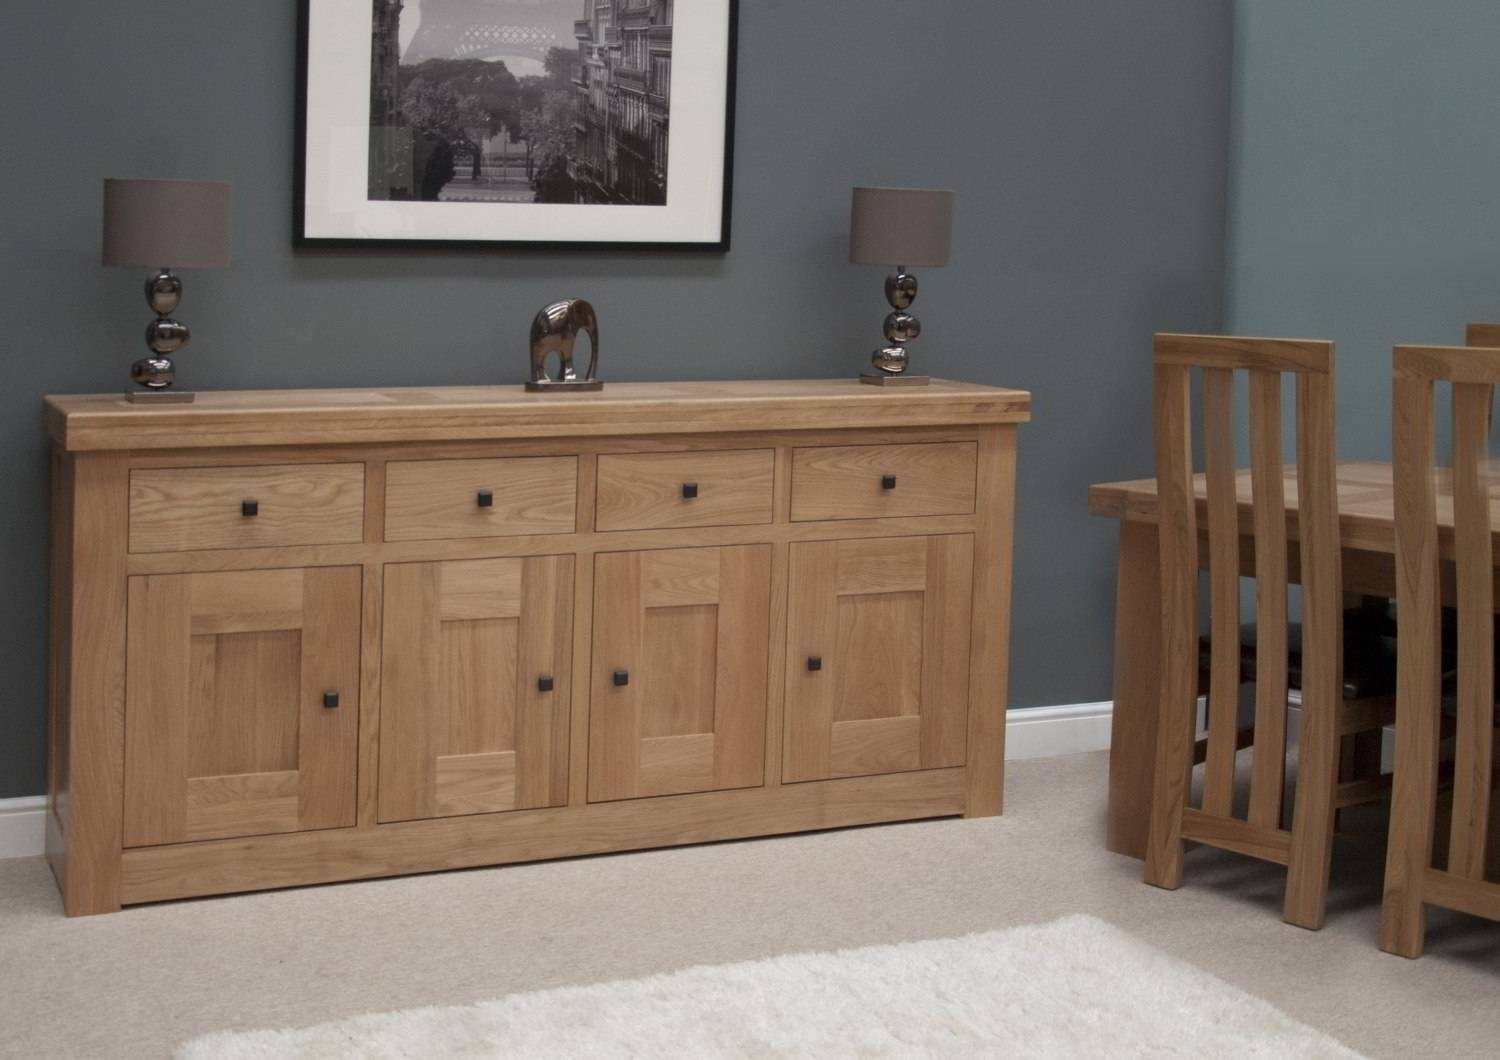 Dining Room Sideboards And – Bombadeagua Within Dining Room Sideboards (View 4 of 15)